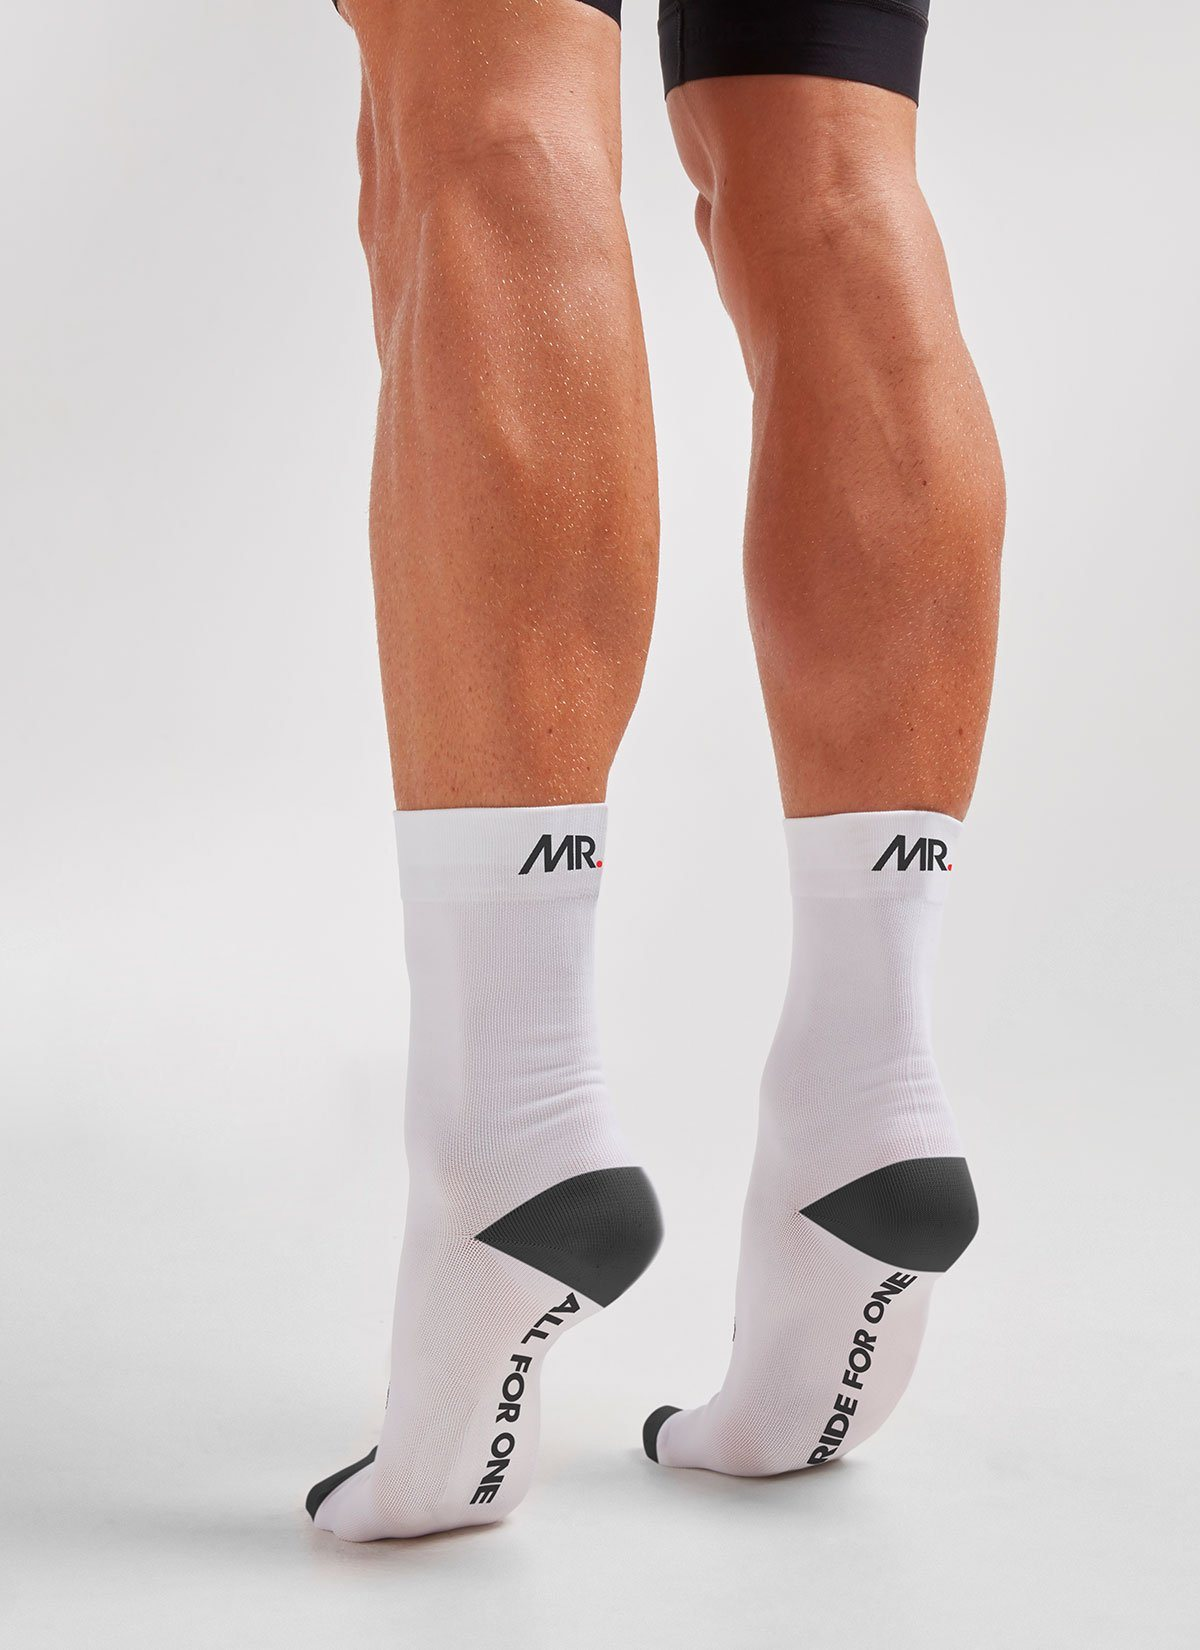 ManRide Necessary Socks - White